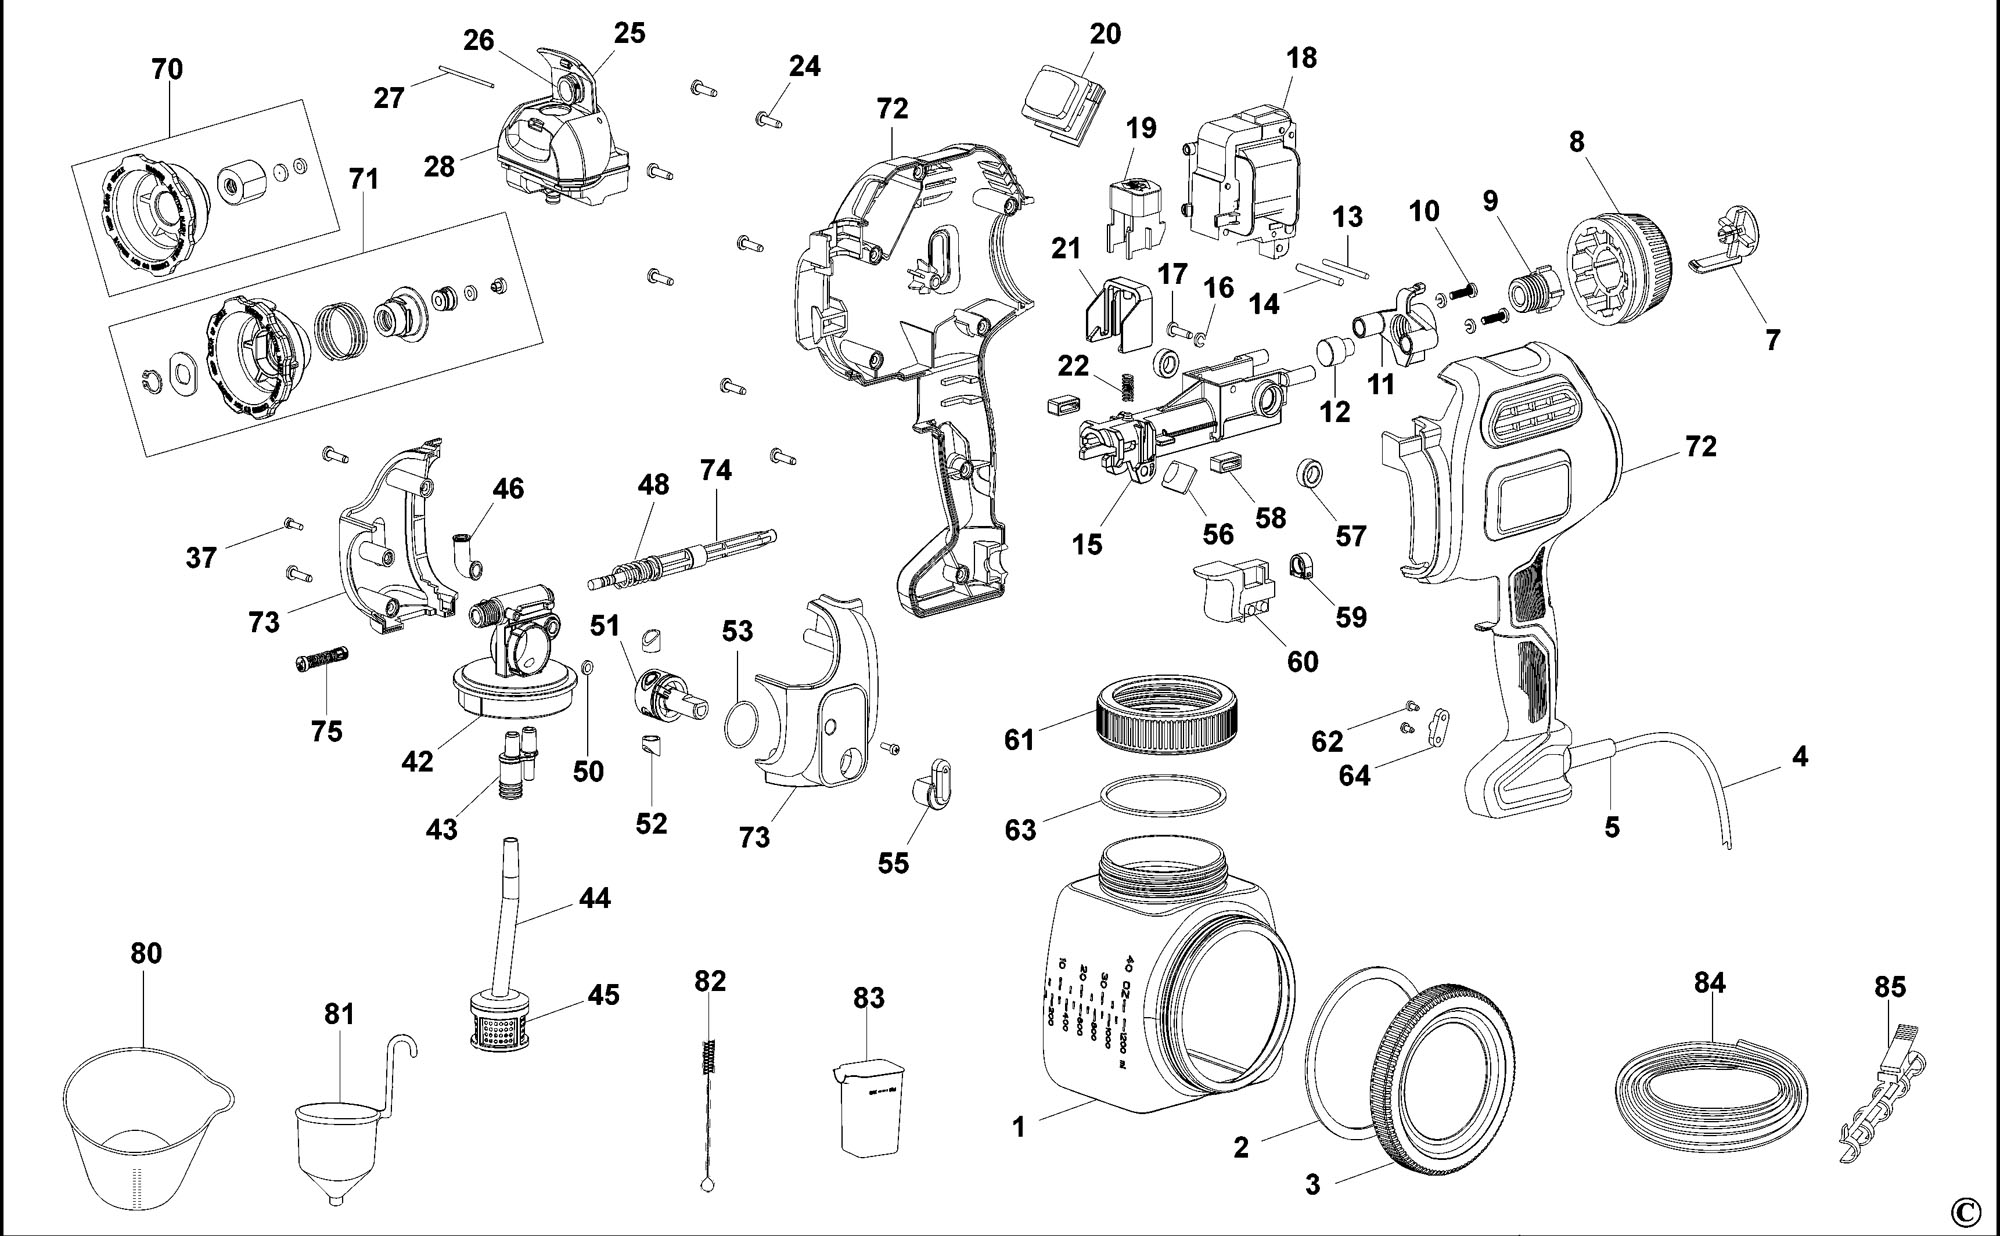 Spares For Black Amp Decker Bdps600 Spray Gun Type 1 Spare Bdps600 Type 1 From Power Tool Centre